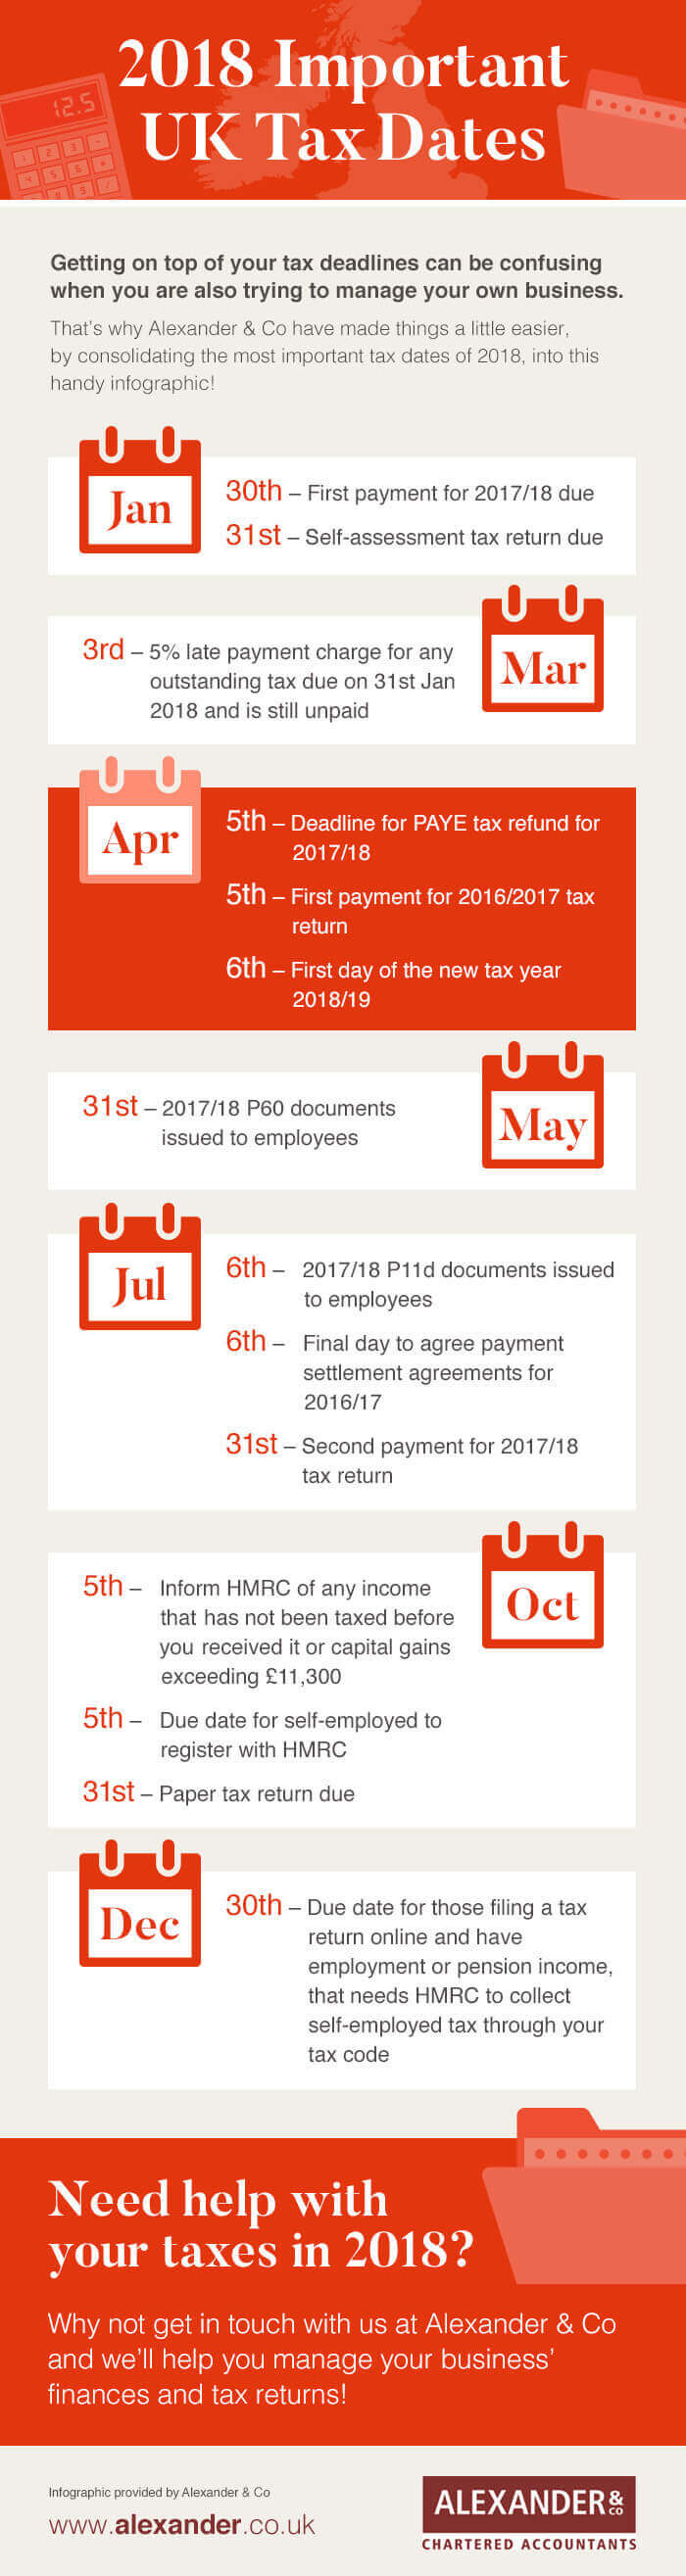 Important tax dates 2018 | Alexander & Co